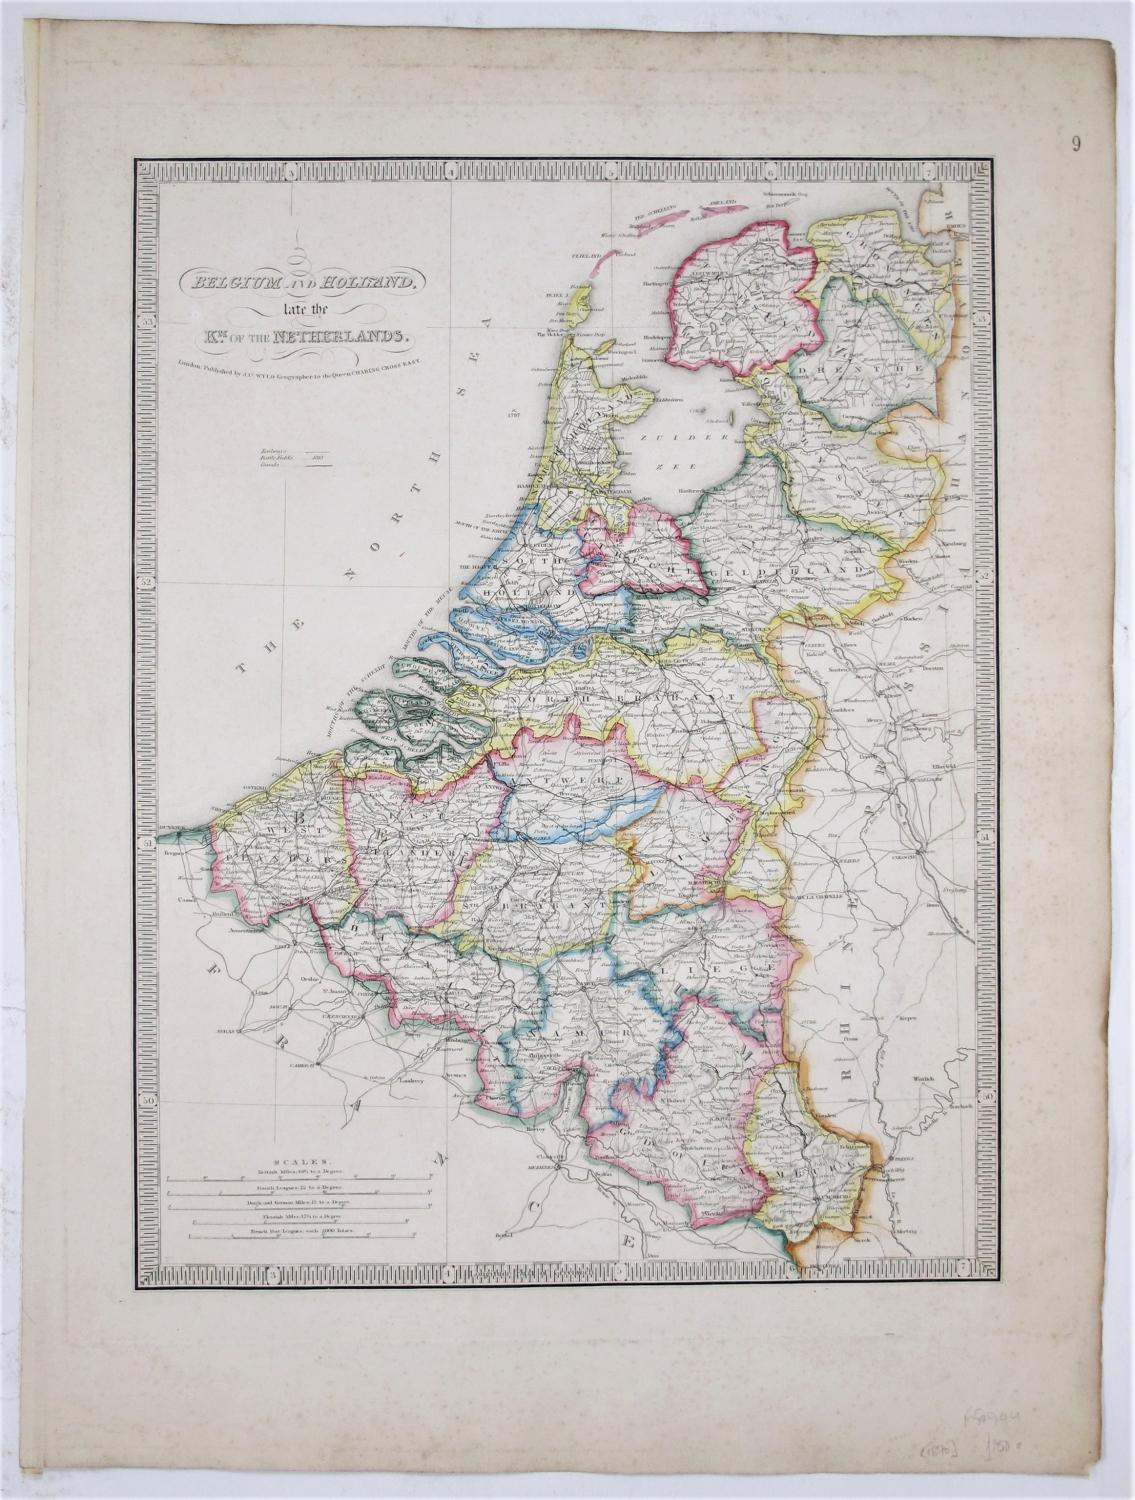 Belgium and Holland, late the Km. of: WYLD, James